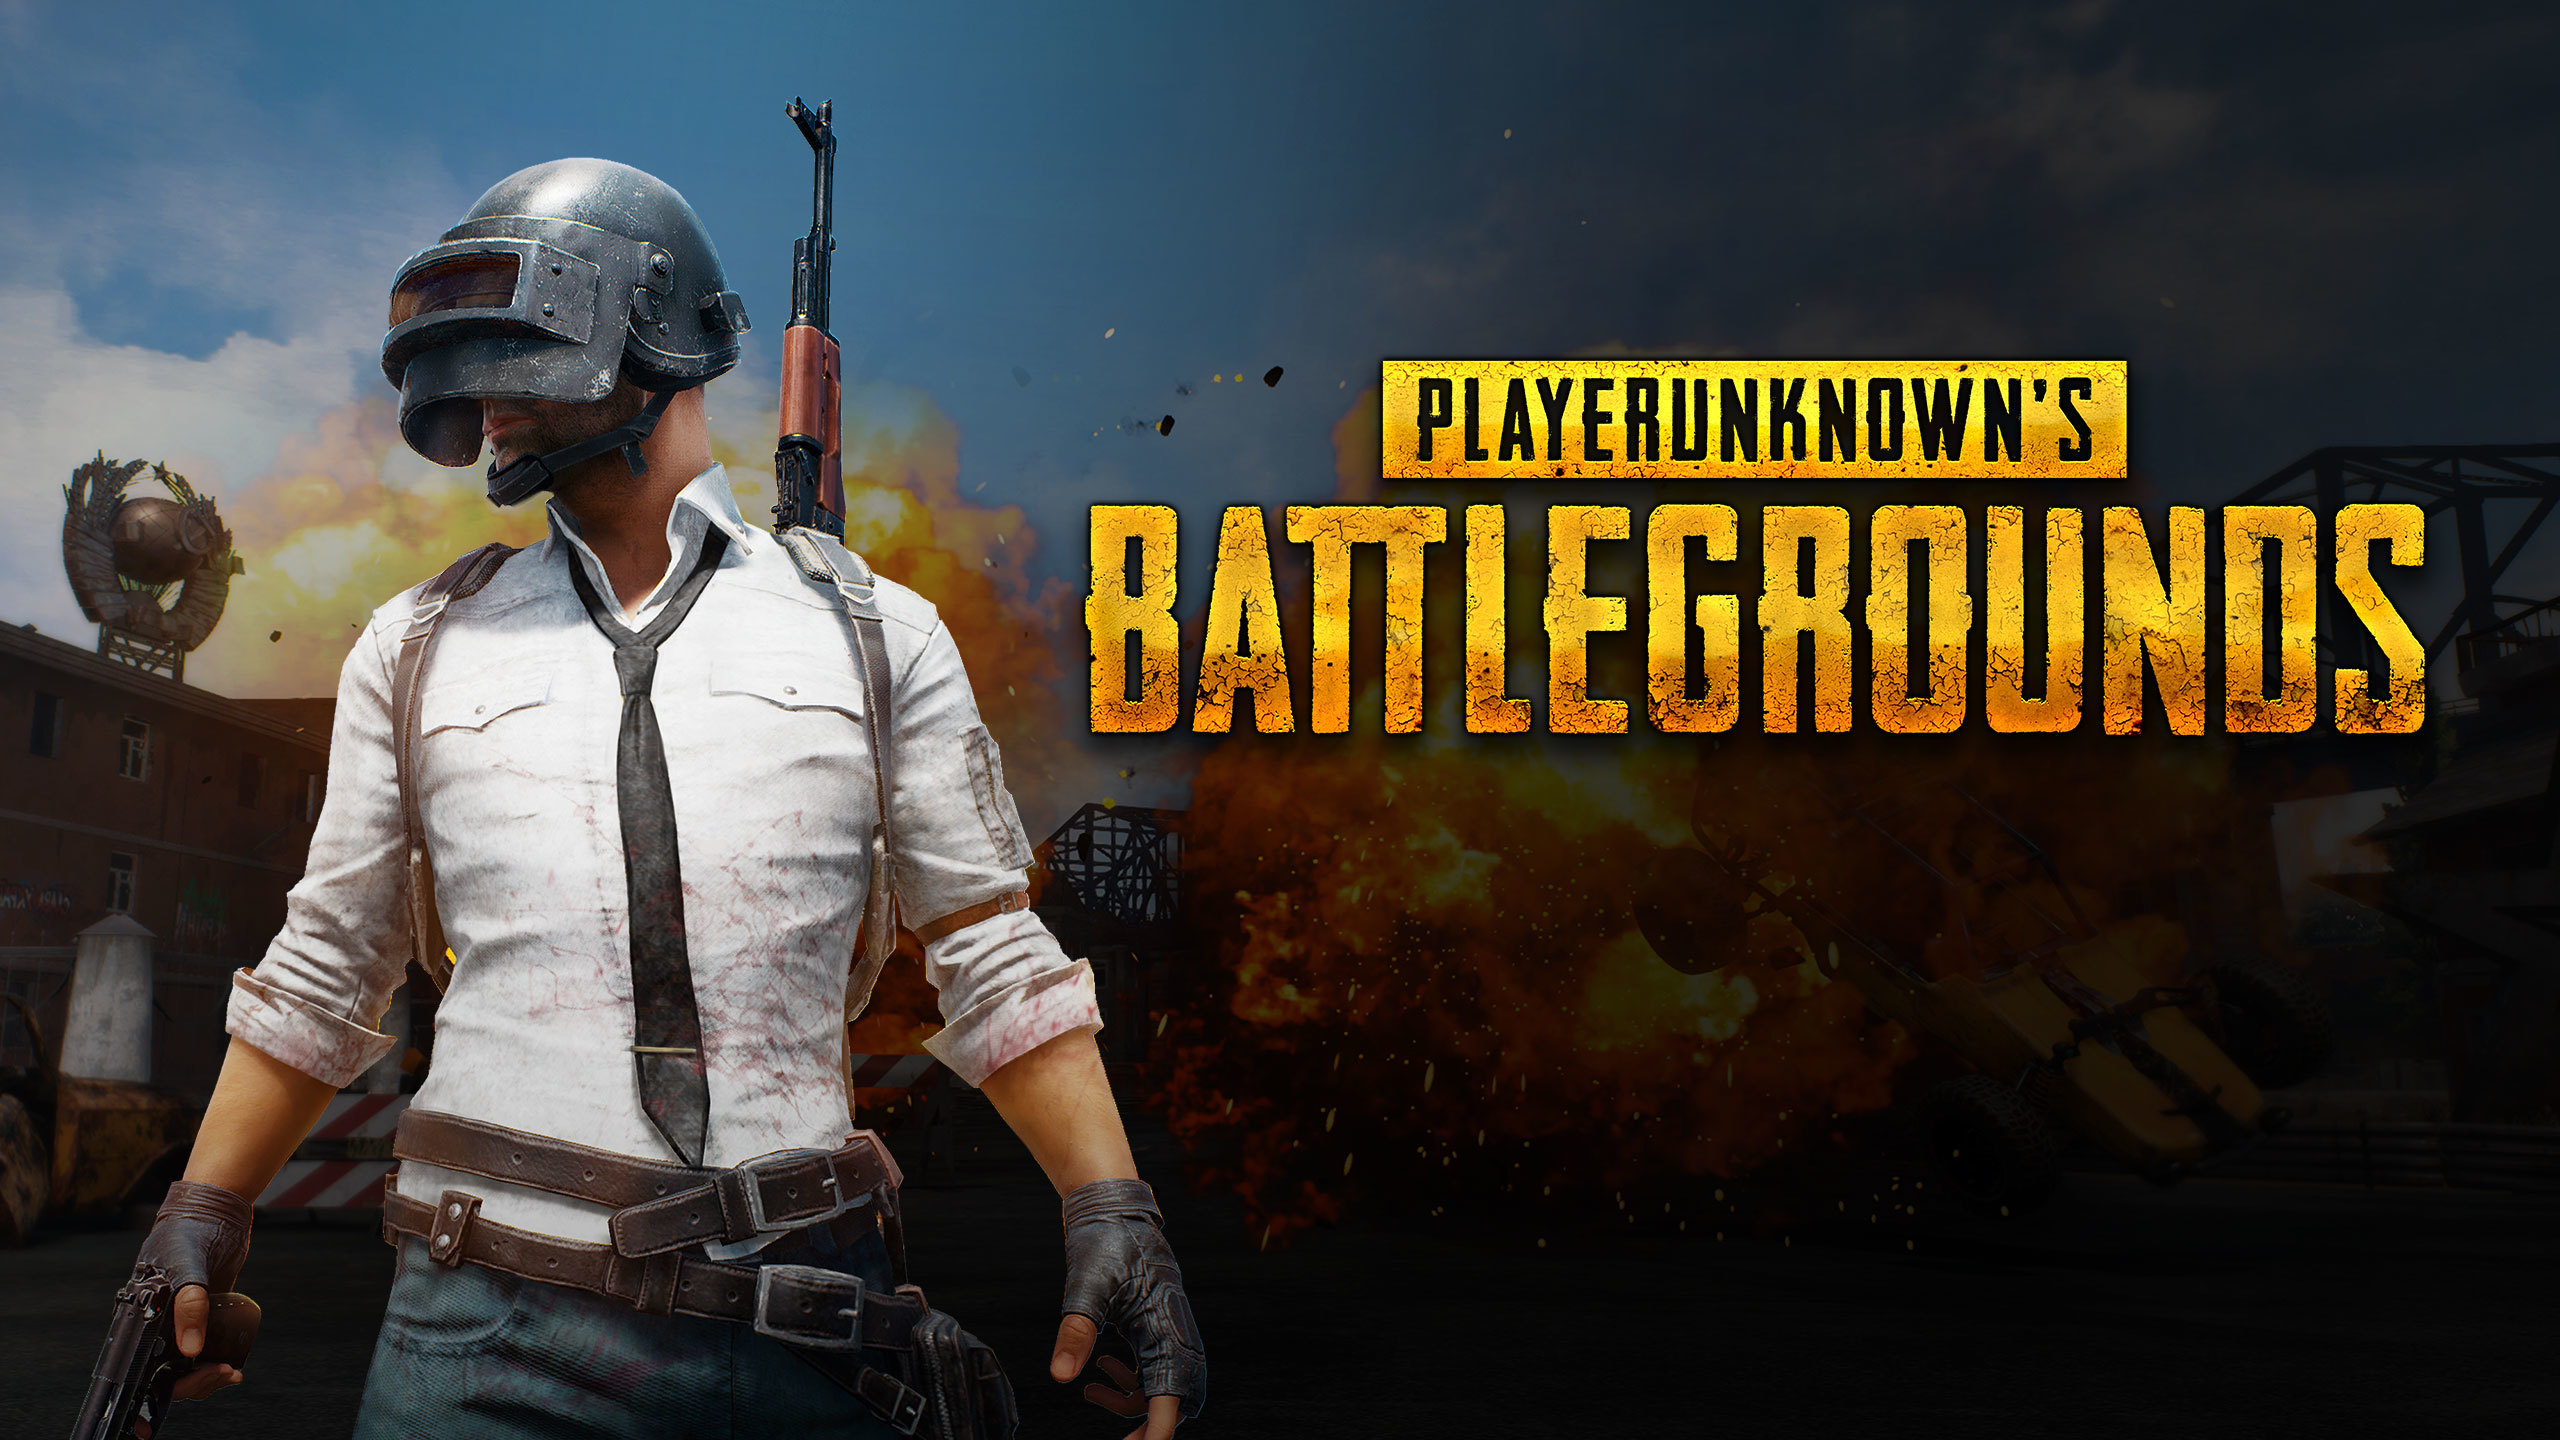 4k Playerunknowns Battlegrounds: PLAYERUNKNOWN'S BATTLEGROUNDS Wallpapers, Pictures, Images